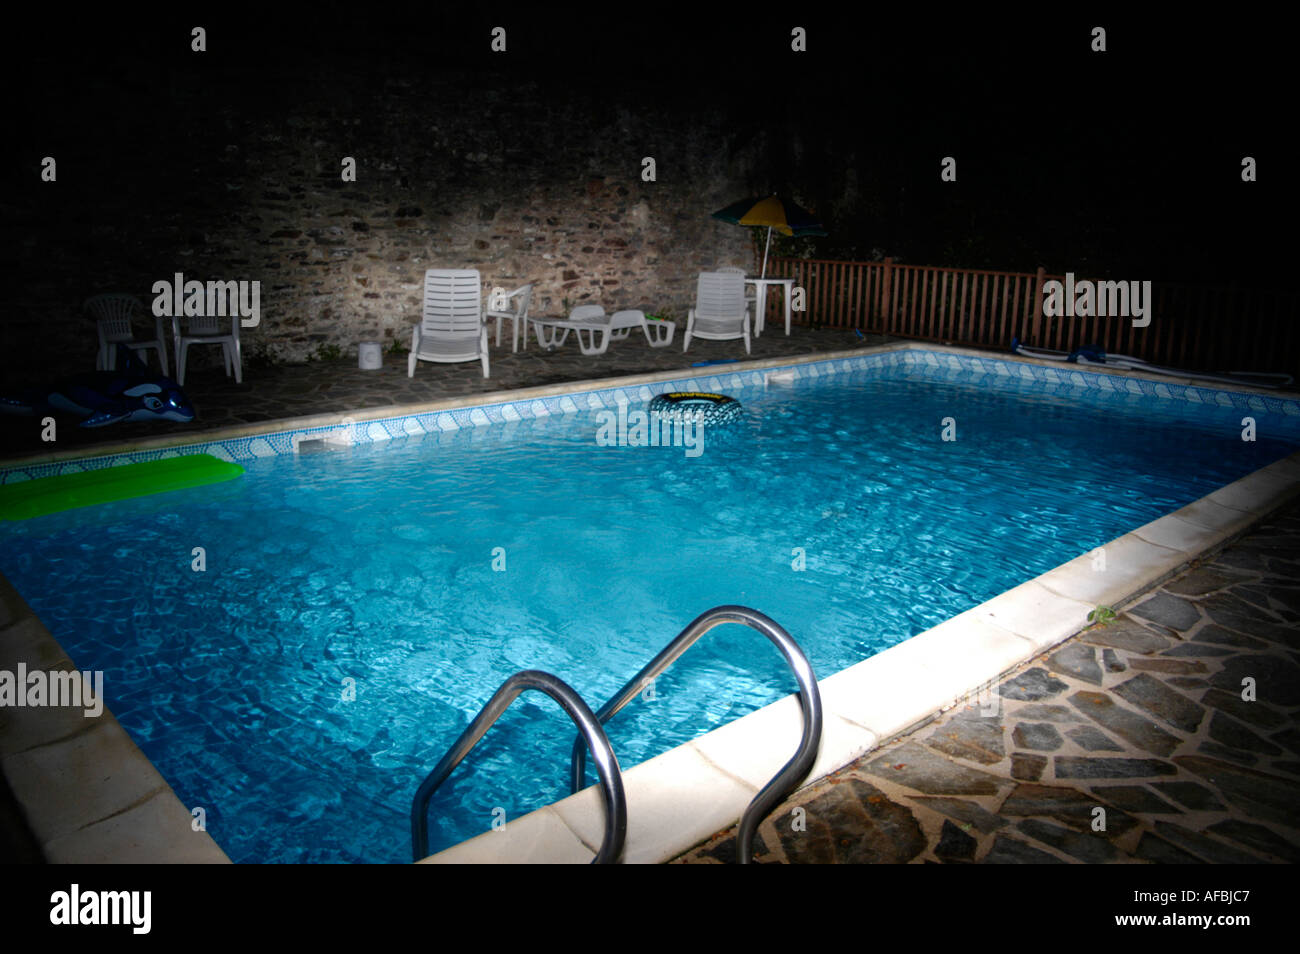 French Swimming Pool At Night With Plastic Chairs Stock